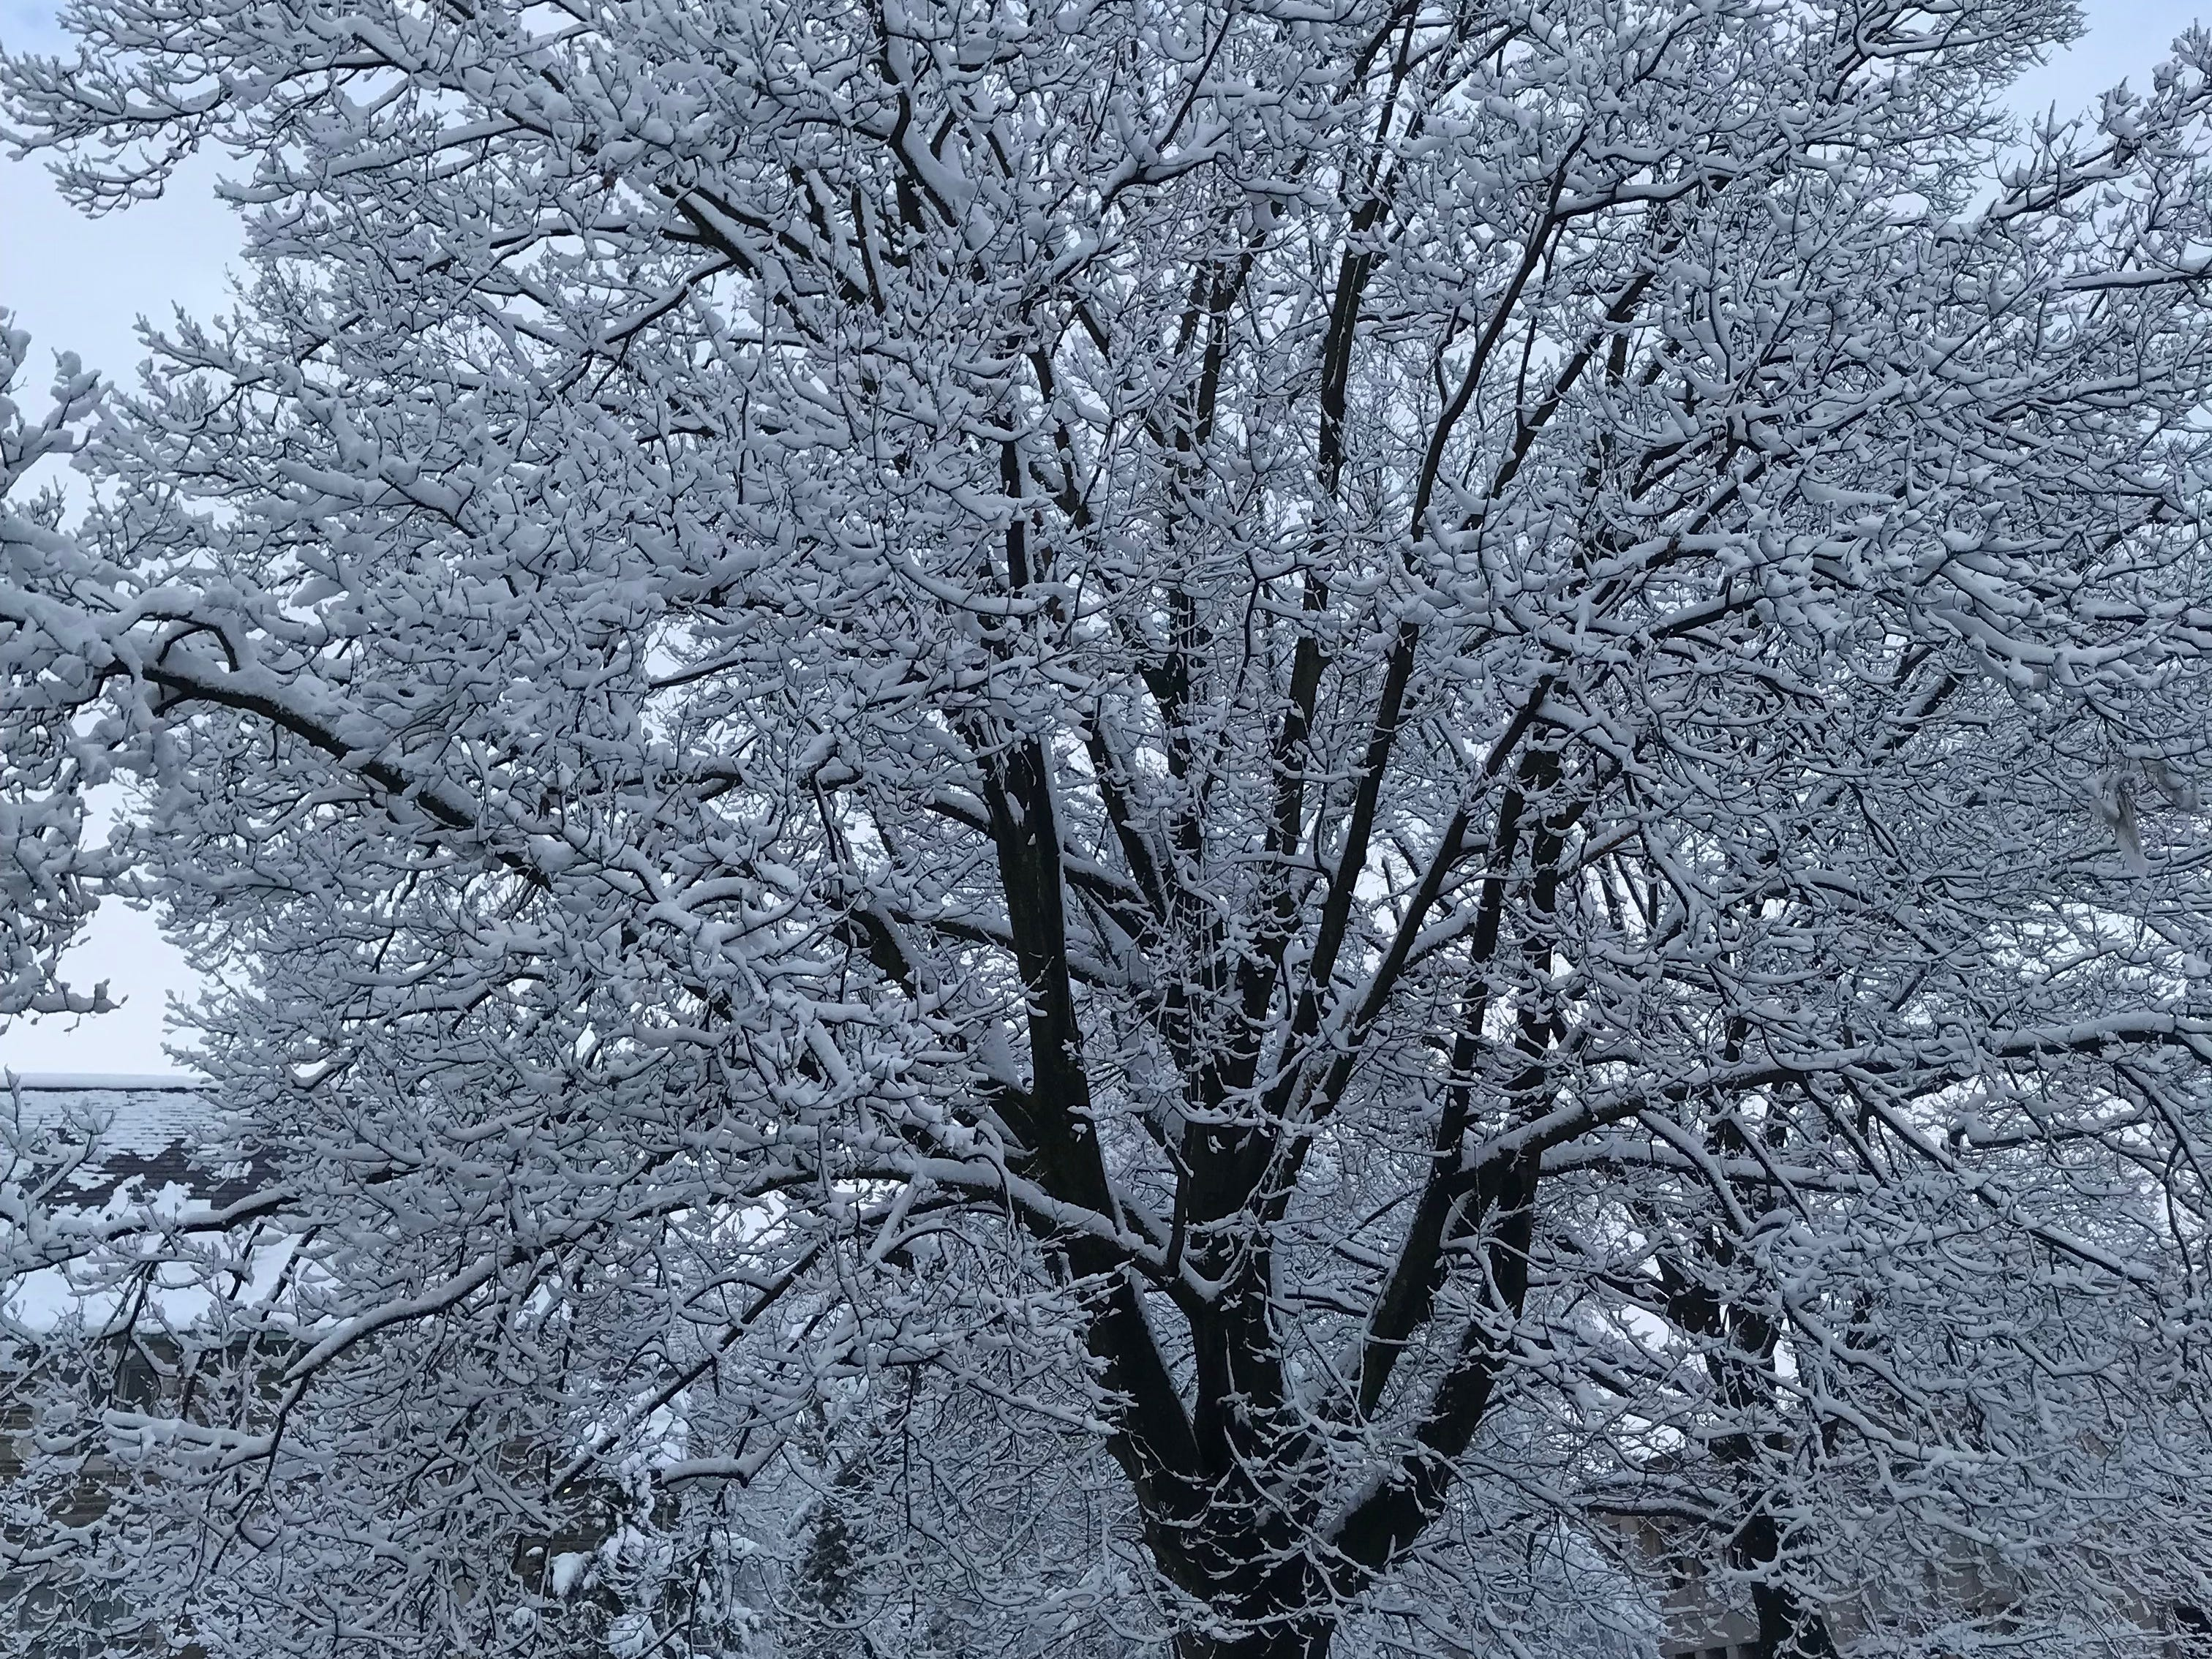 Trees laden with snow in Montclair.